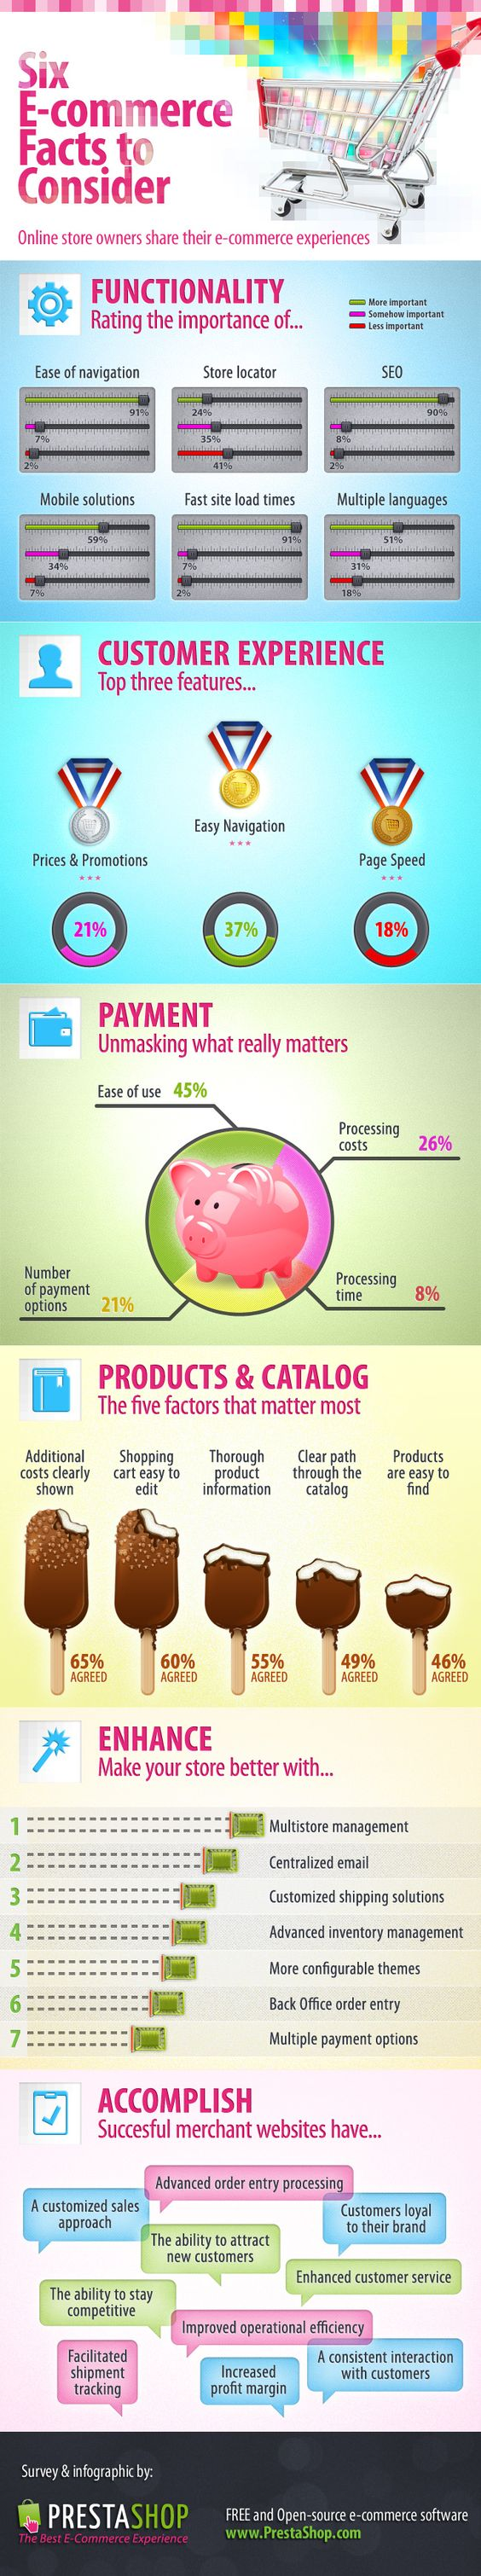 E-commerce : 6 facts to consider #infographic #socialmedia